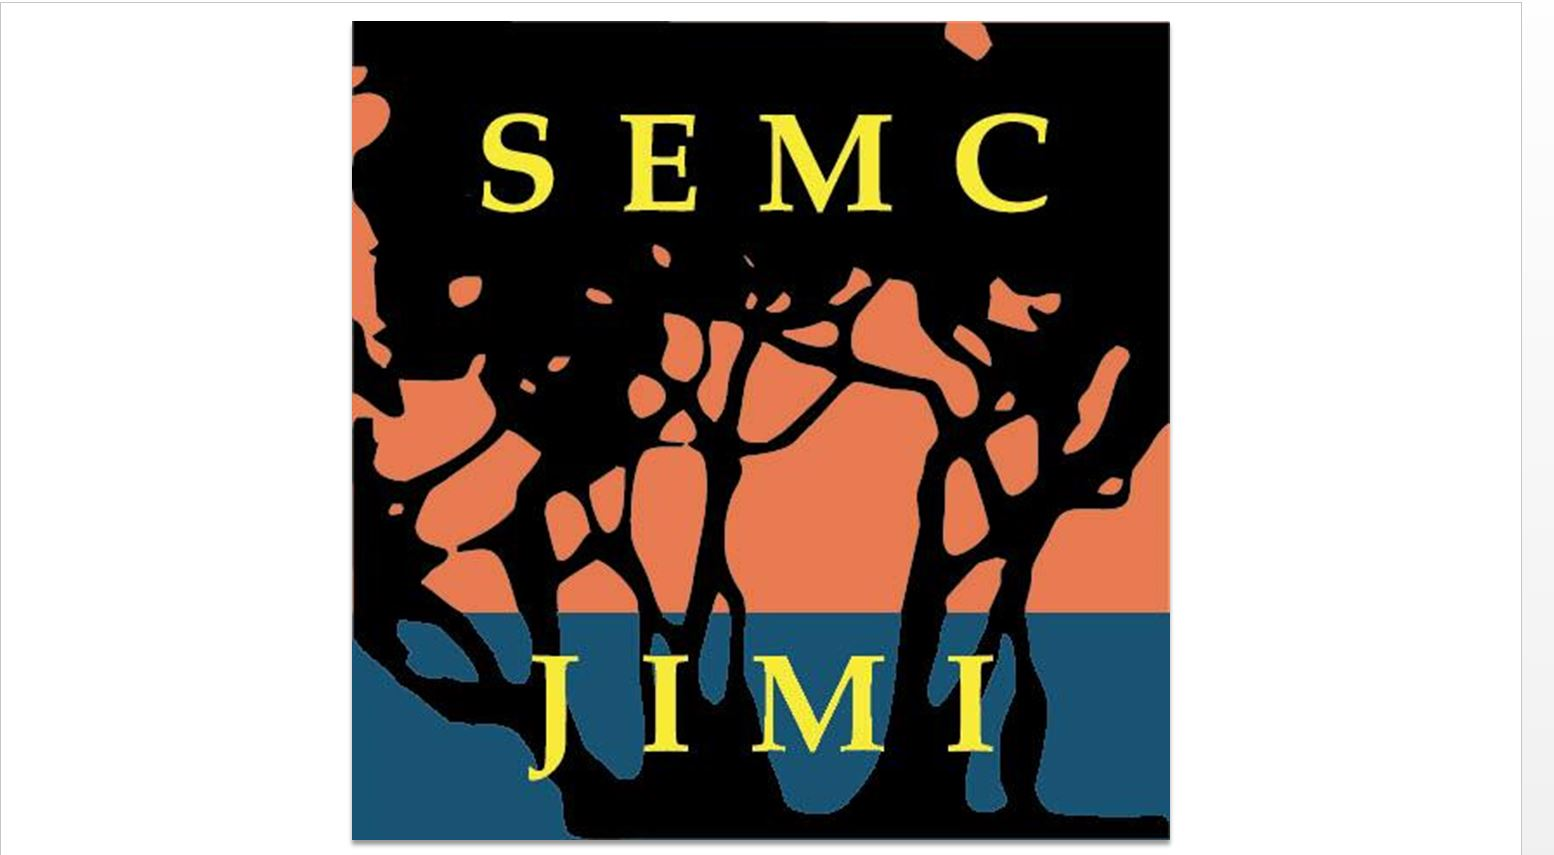 Jekyll Island Management Institute logo with the SEMC and JIMI in yellow on top of a tree shadow image with an orange and blue background.